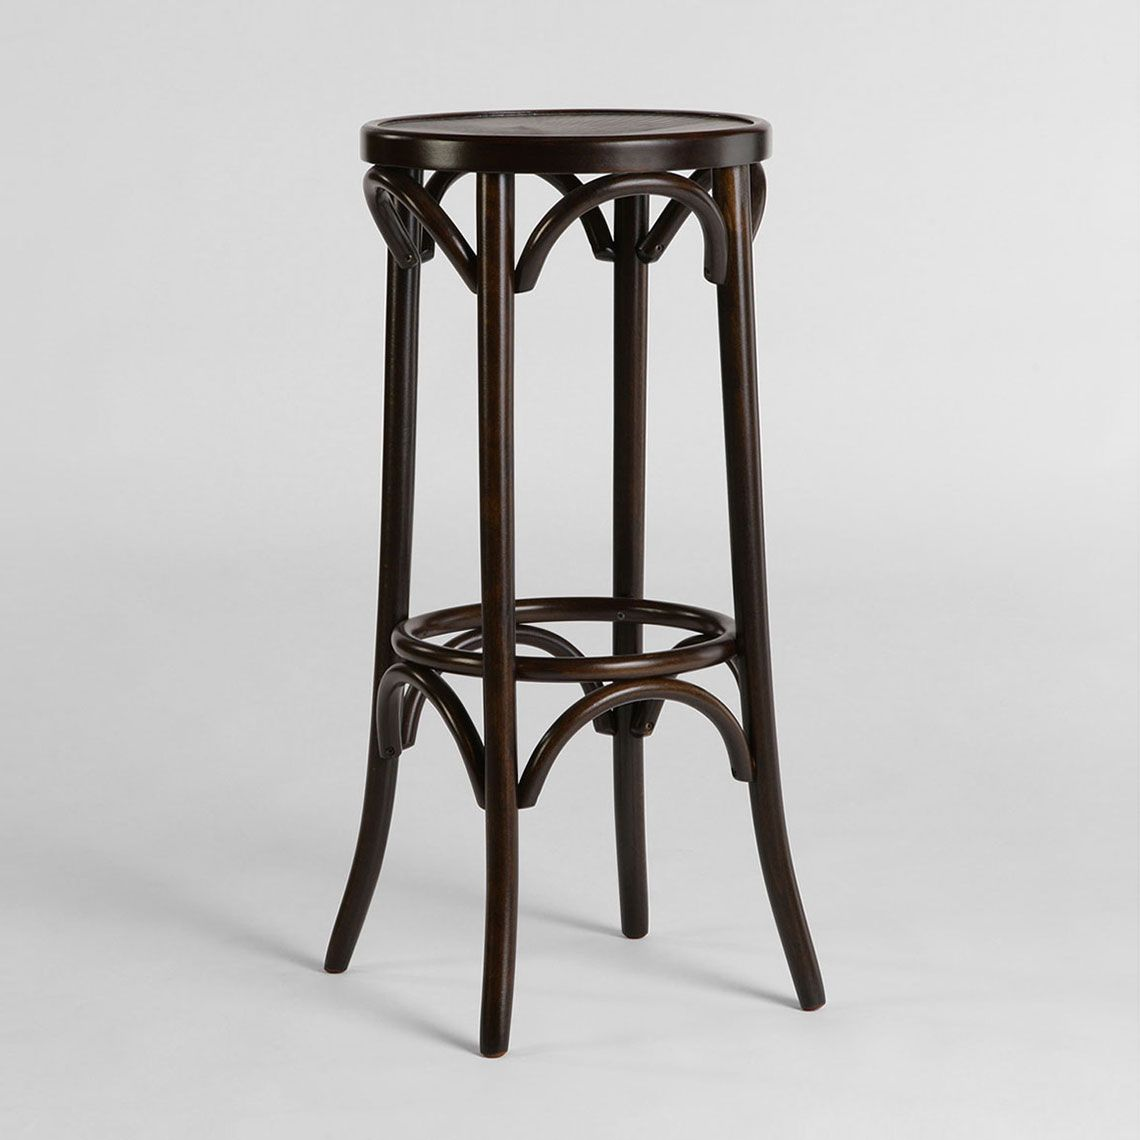 Classic Bentwood Barstool by Fameg. Available from